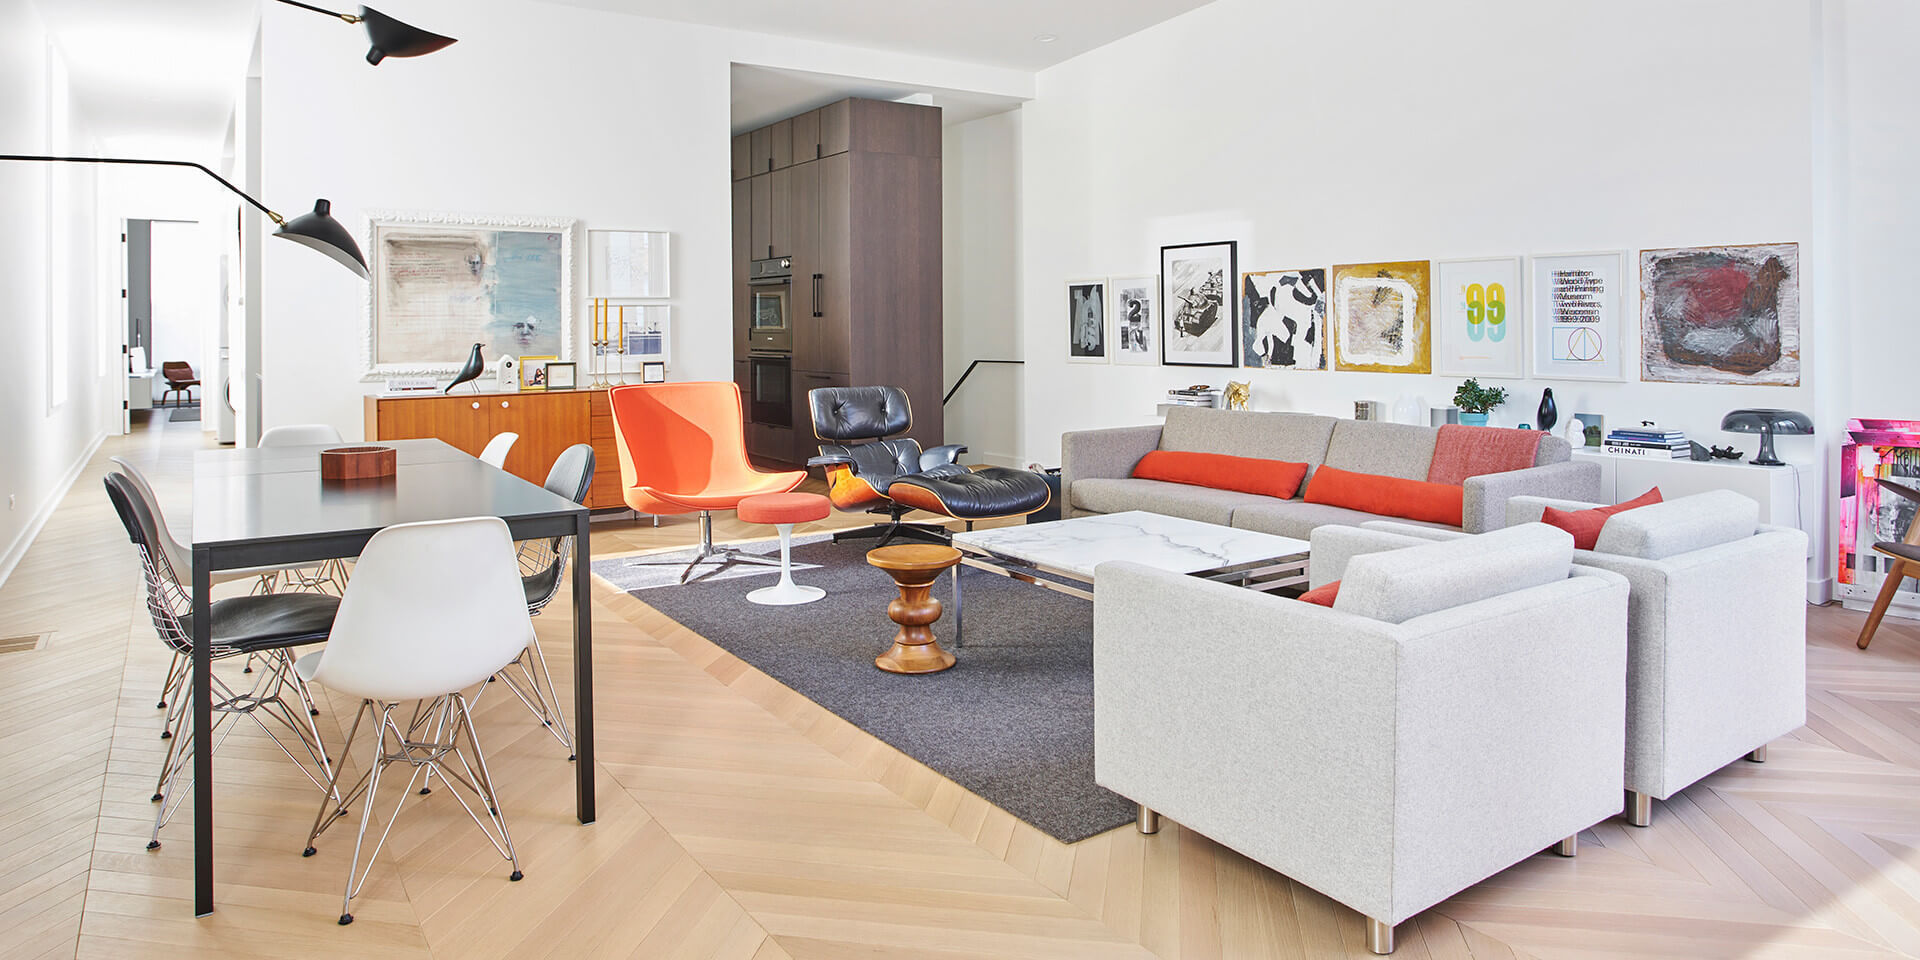 Beautiful apartment interior features wooden floors finished with Rubio Monocoat.